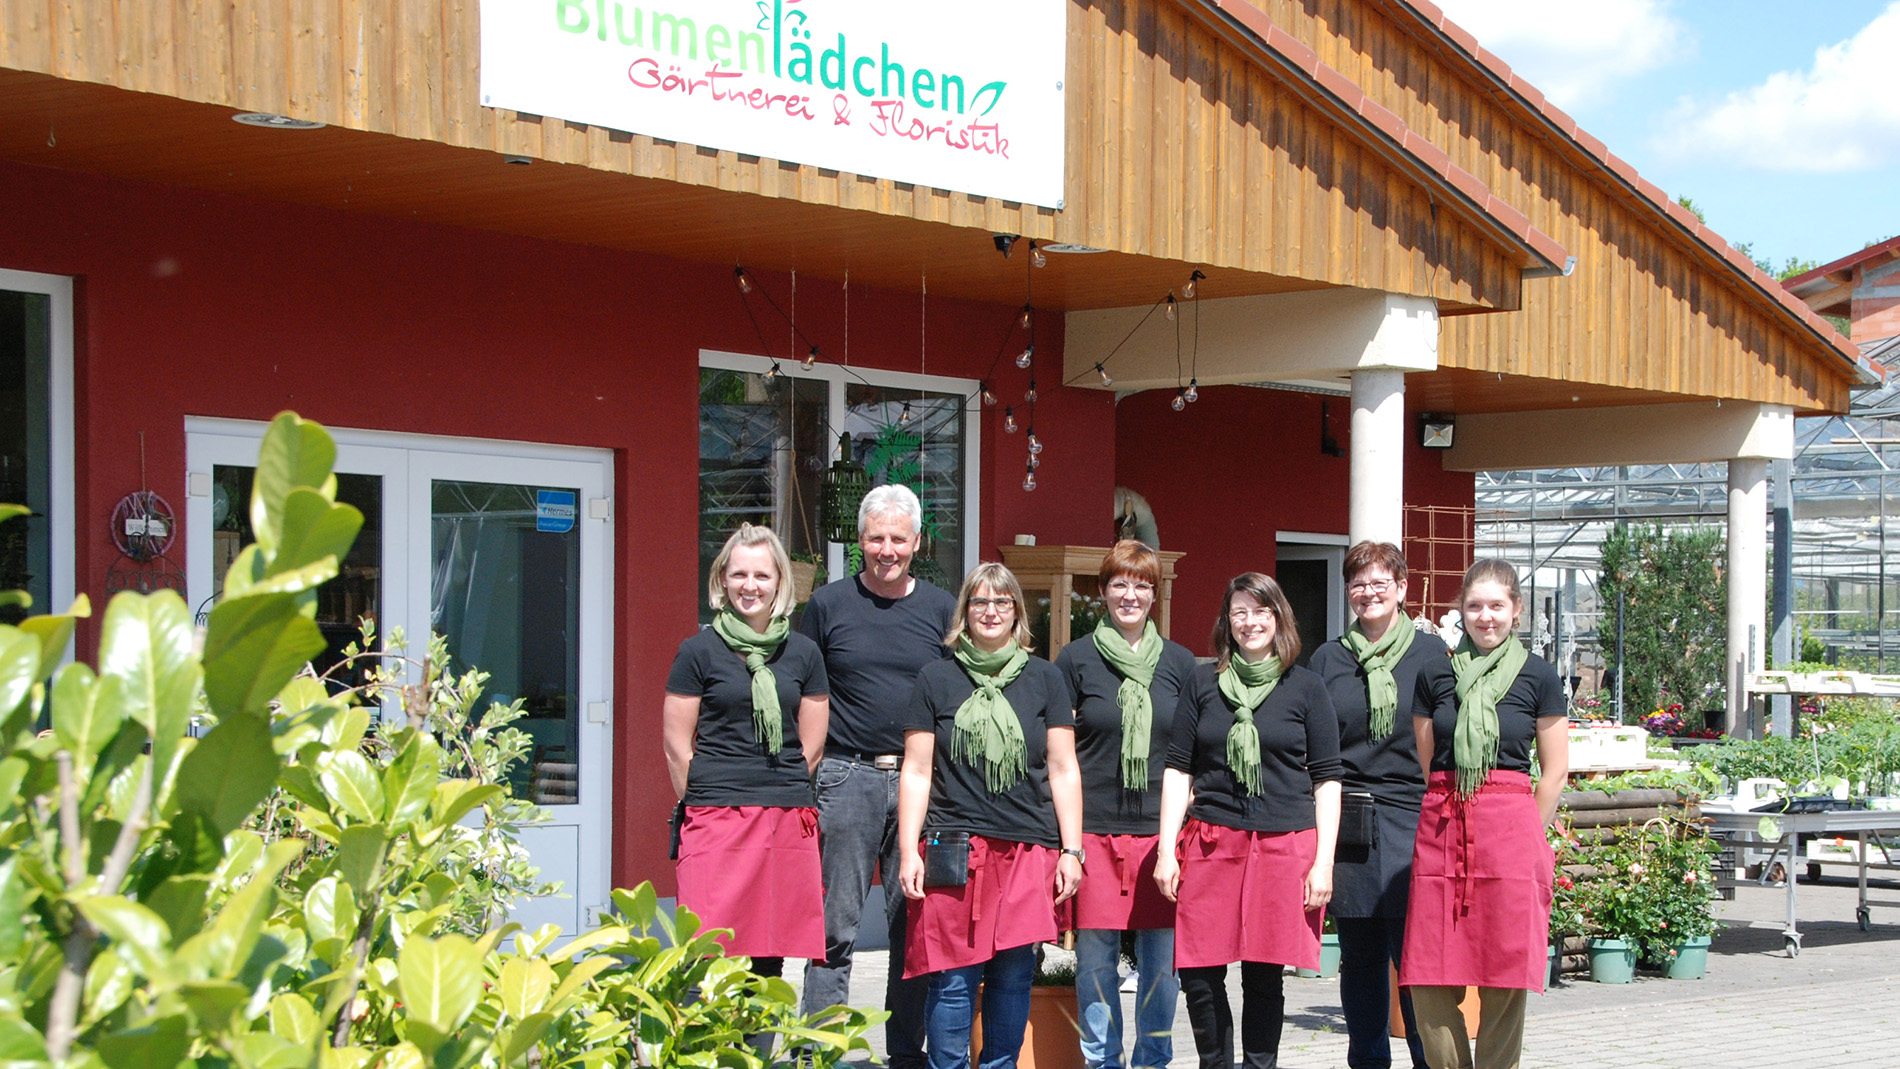 Owner Elmar Fleck with members of his family company in front of the Blumenlädchen Morles